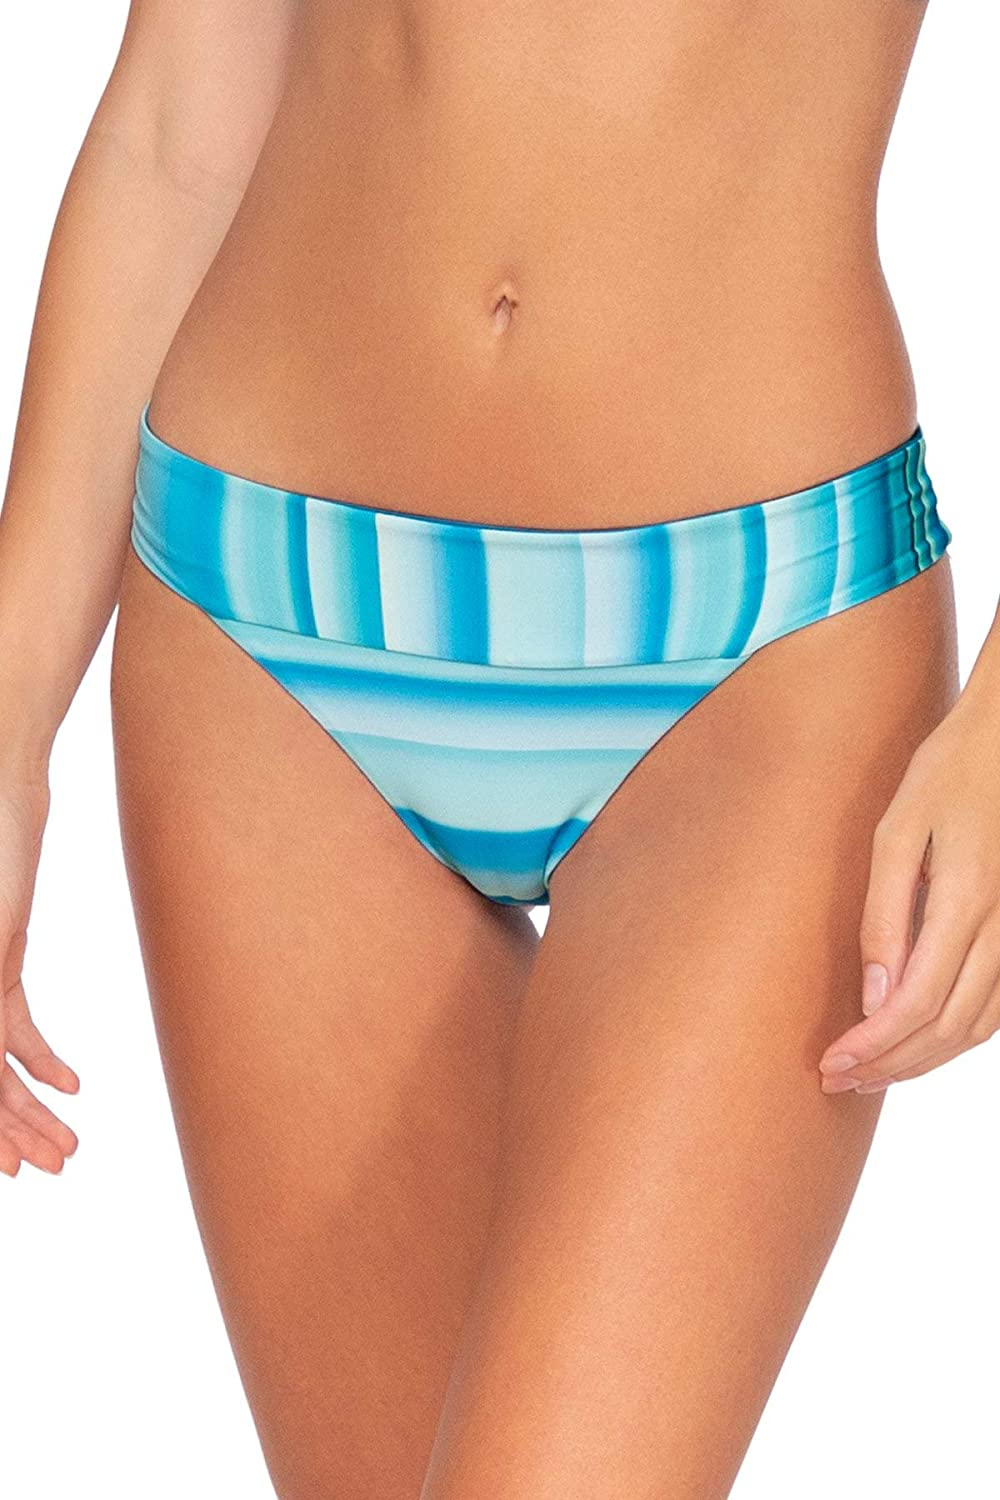 Swim Systems Bliss Banded Swimsuit Bottom Bikini SEAL limited Gifts product